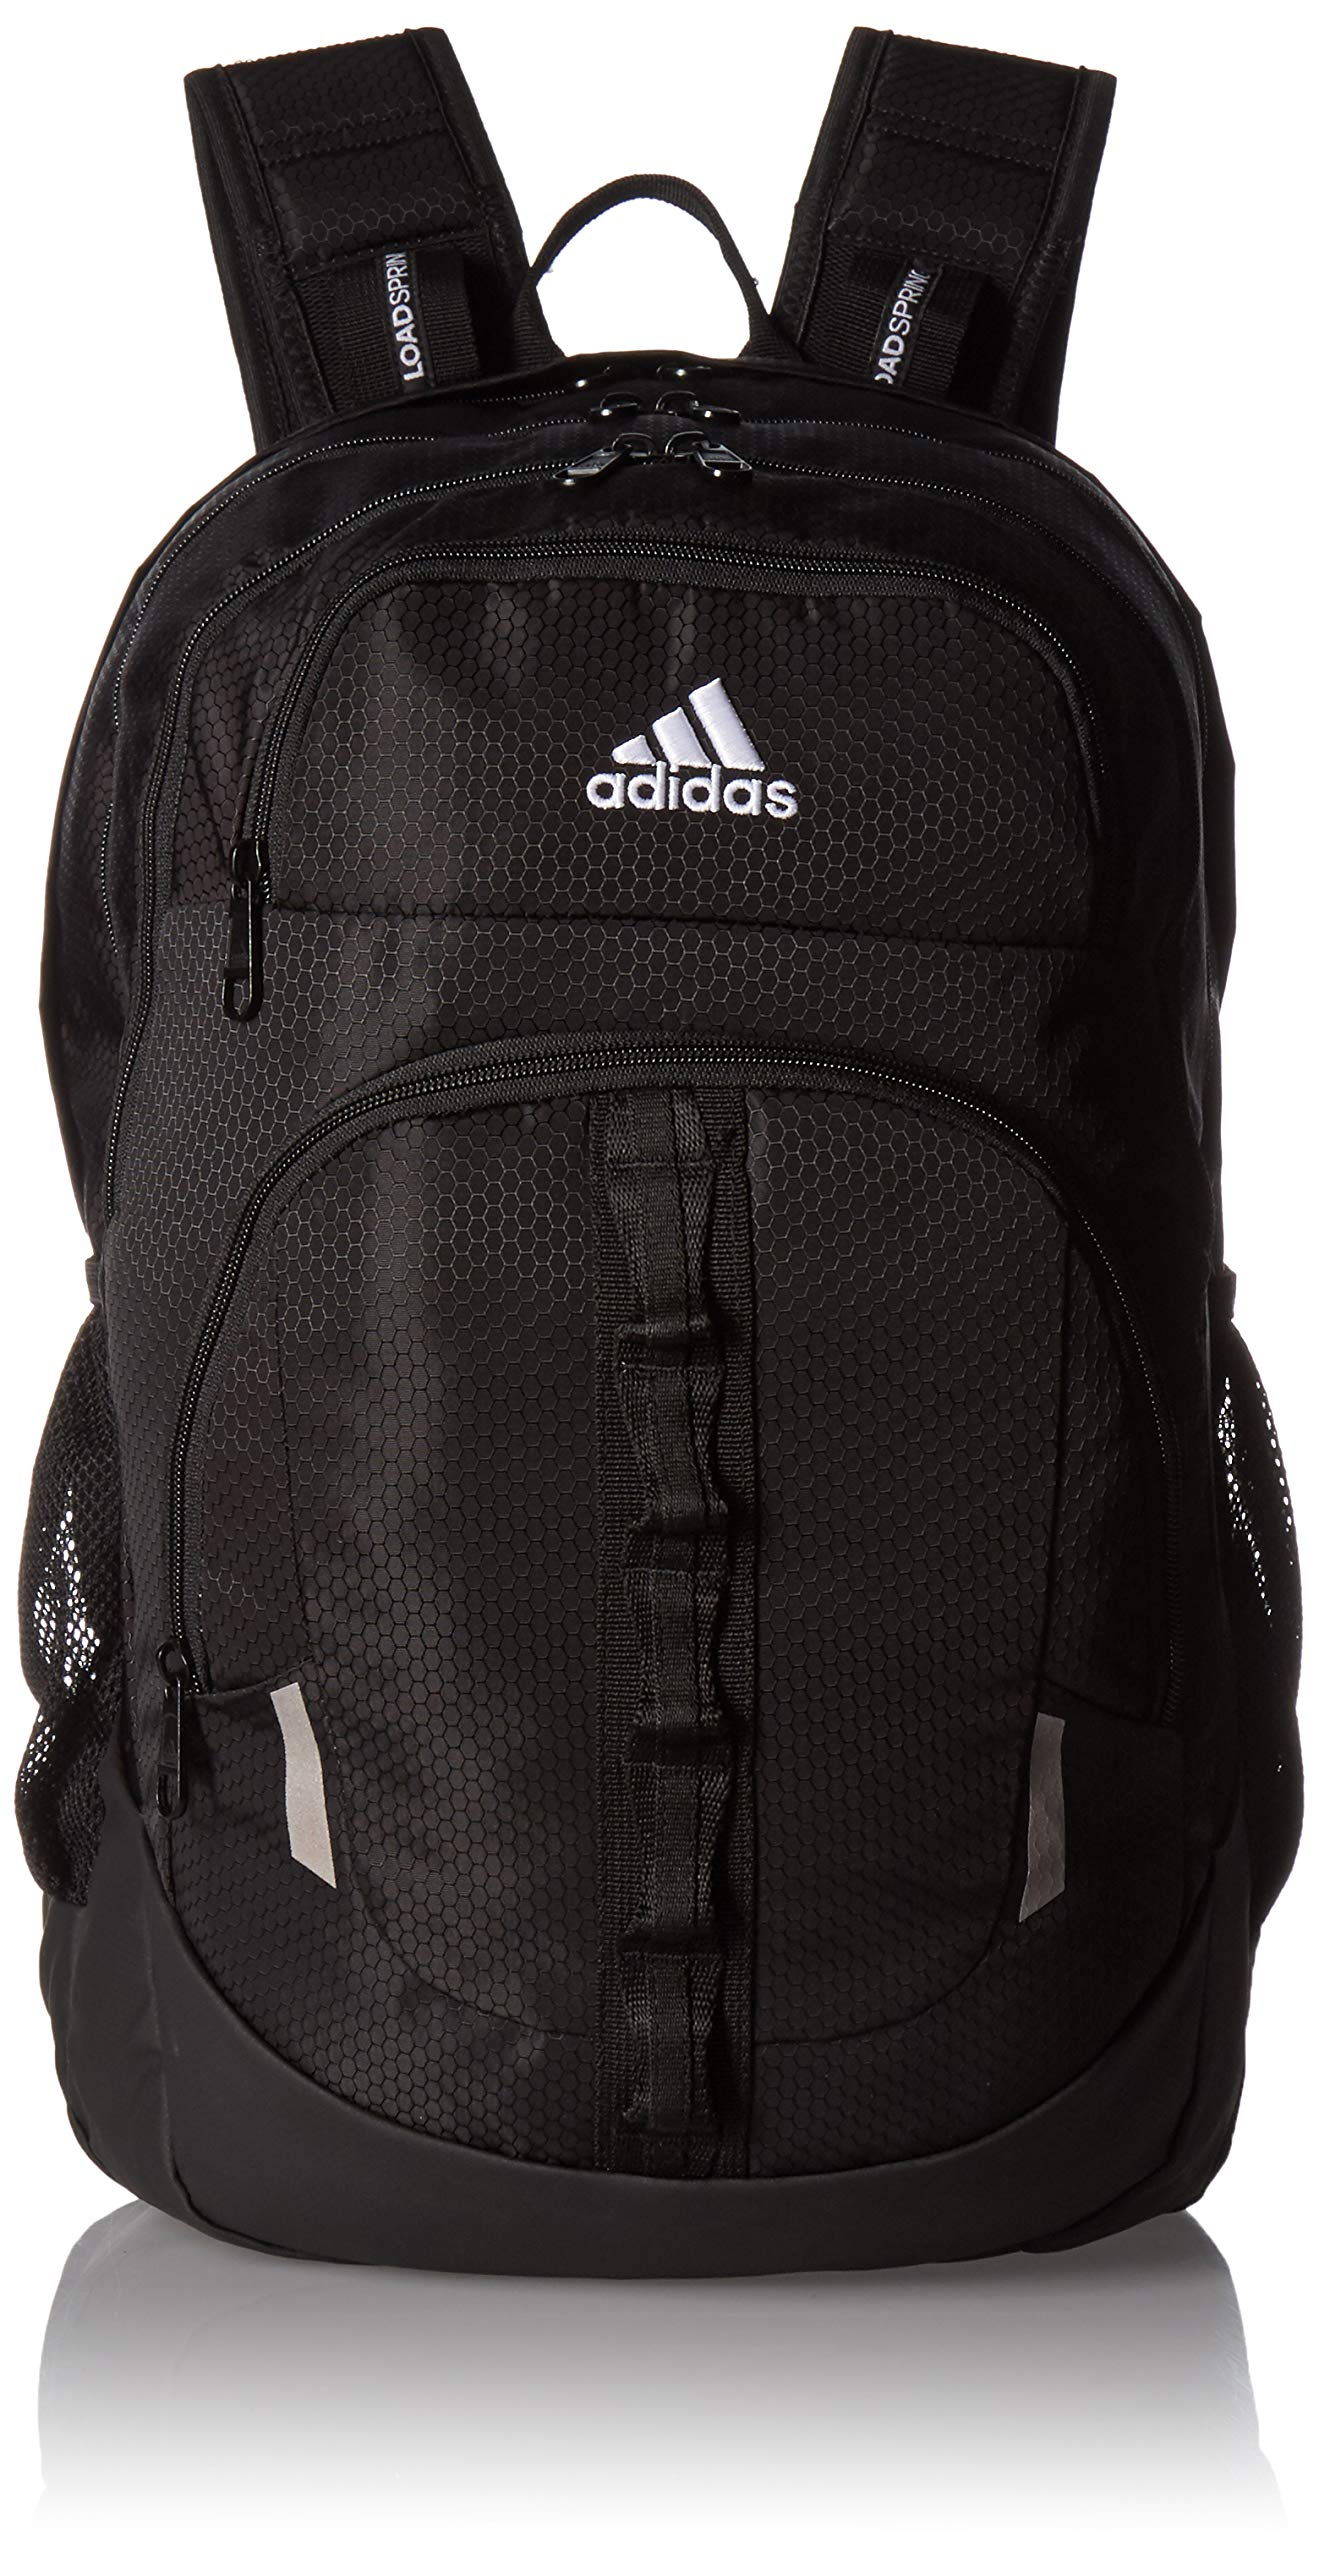 adidas Prime Backpack, Black, One Size